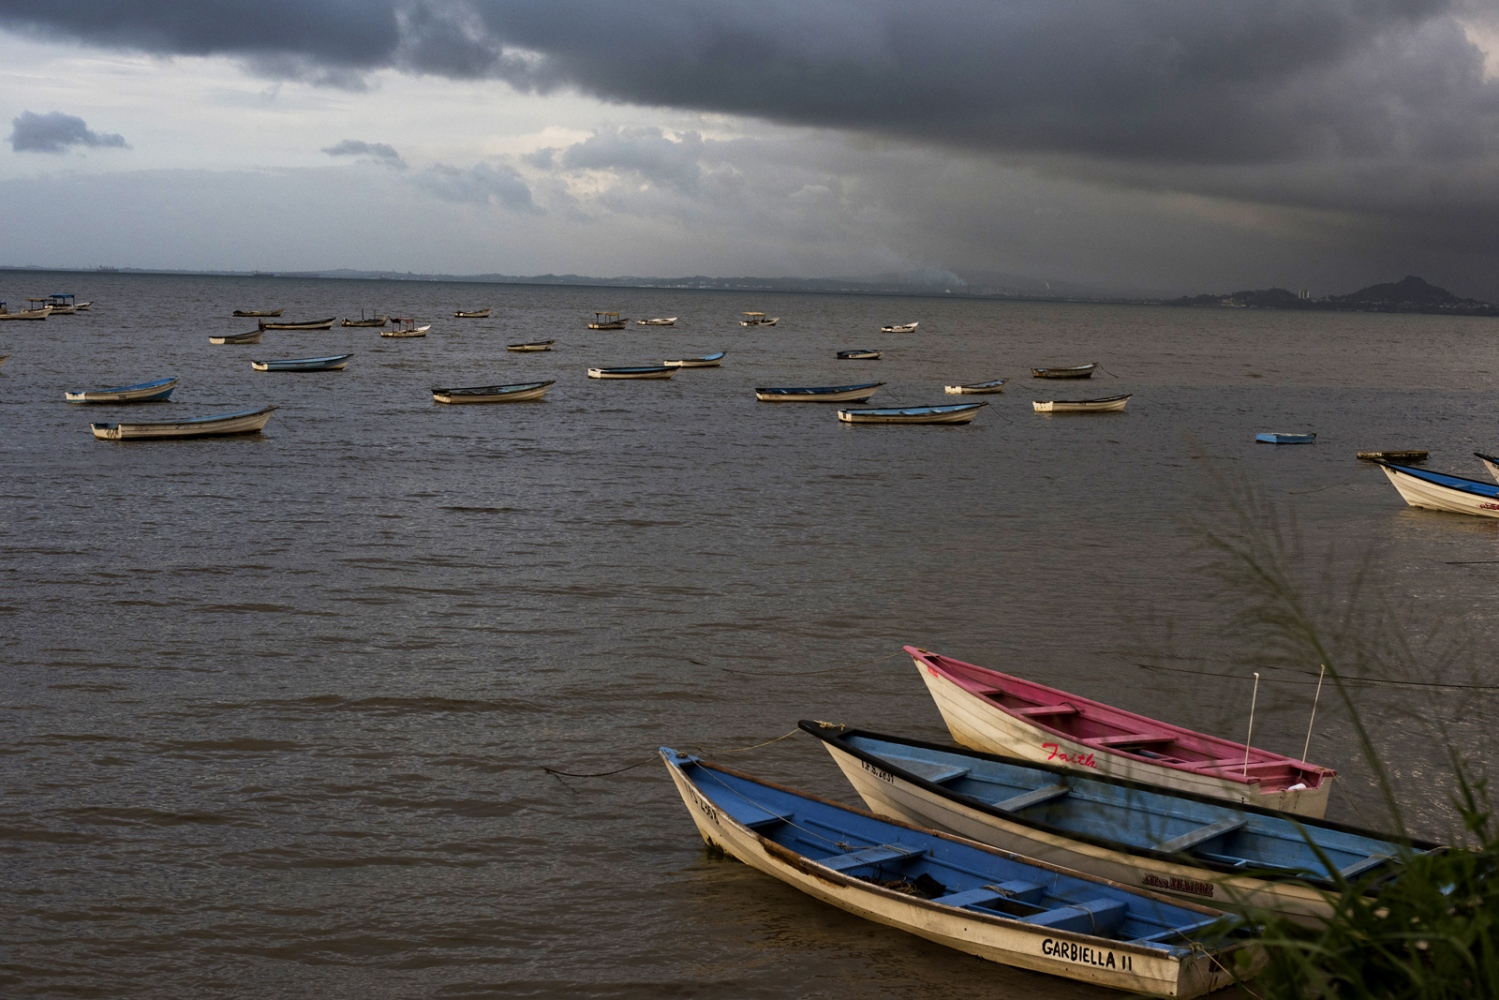 Boats in the midst of the sea, at San Fernando in Trinidad and Tobago. As economy crumbles in Venezuela , desperate people travel 10 hours to buy food, supplies across the water in Trinidad, and some Venezuelans arenew immigrants informal workers in Trinidad.